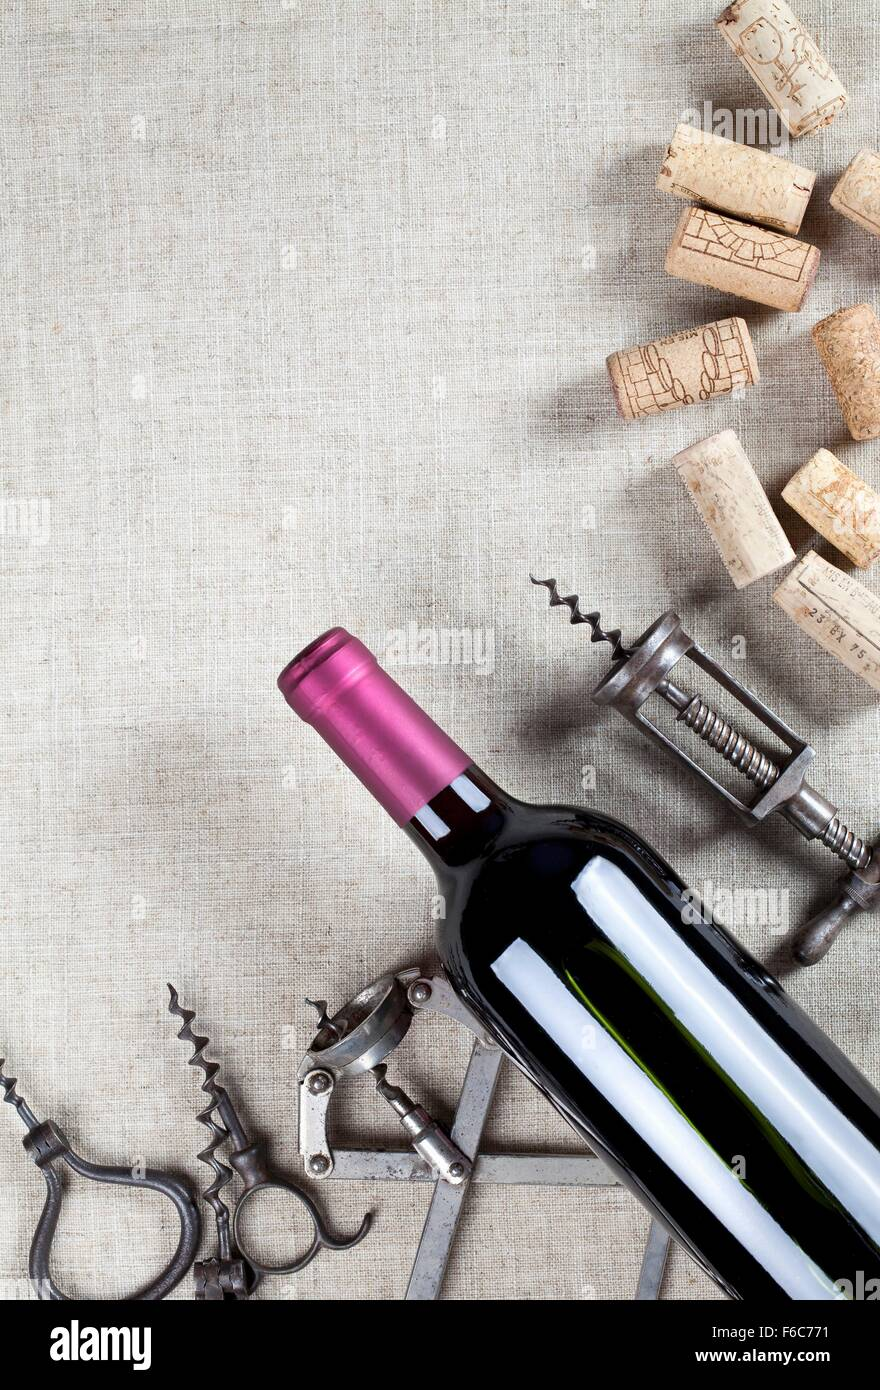 A bottle of red wine, old corkscrews and wine corks - Stock Image